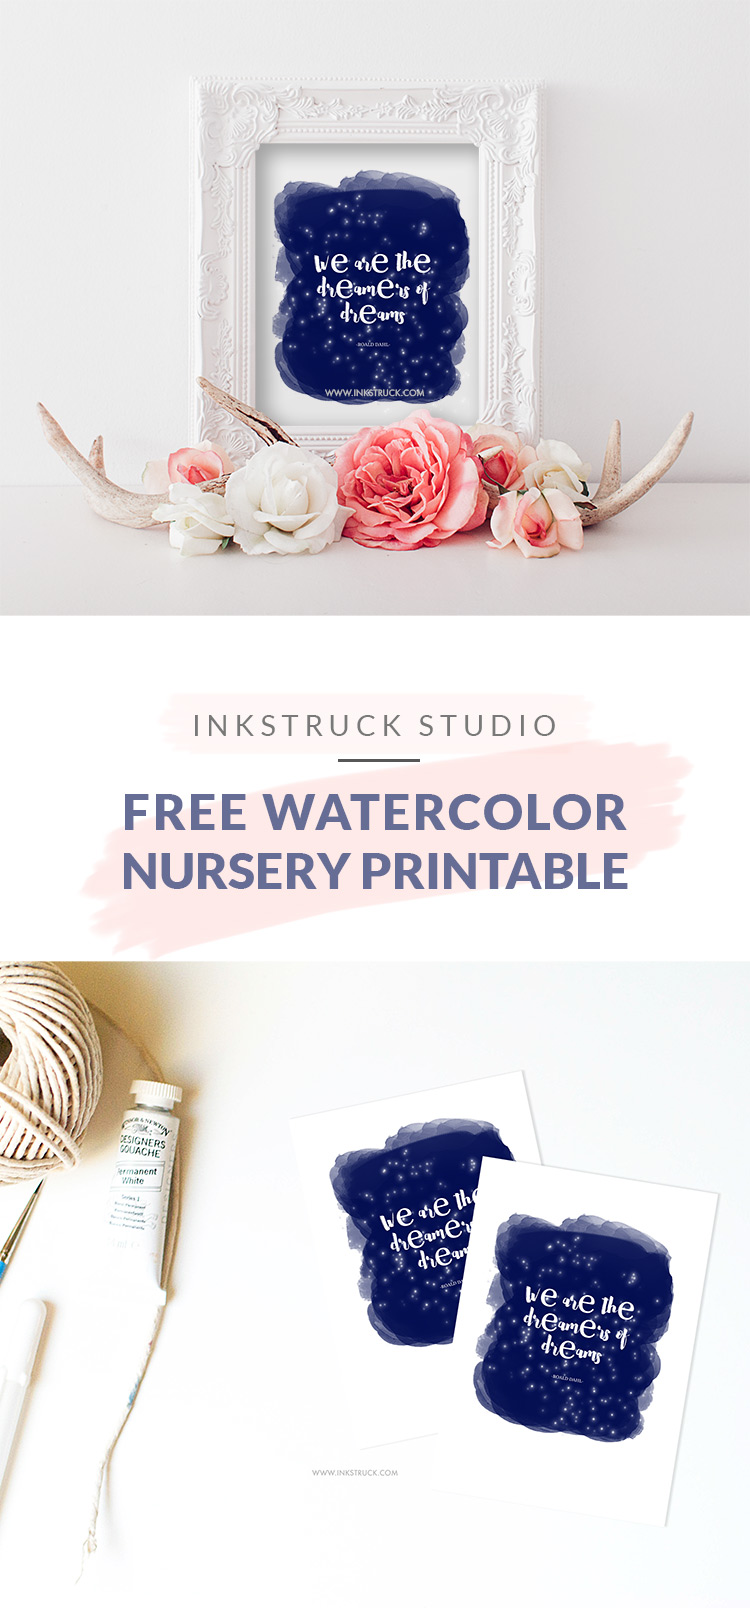 Free watercolor nursery printable-Roald Dahl quote | Inkstruck Studio